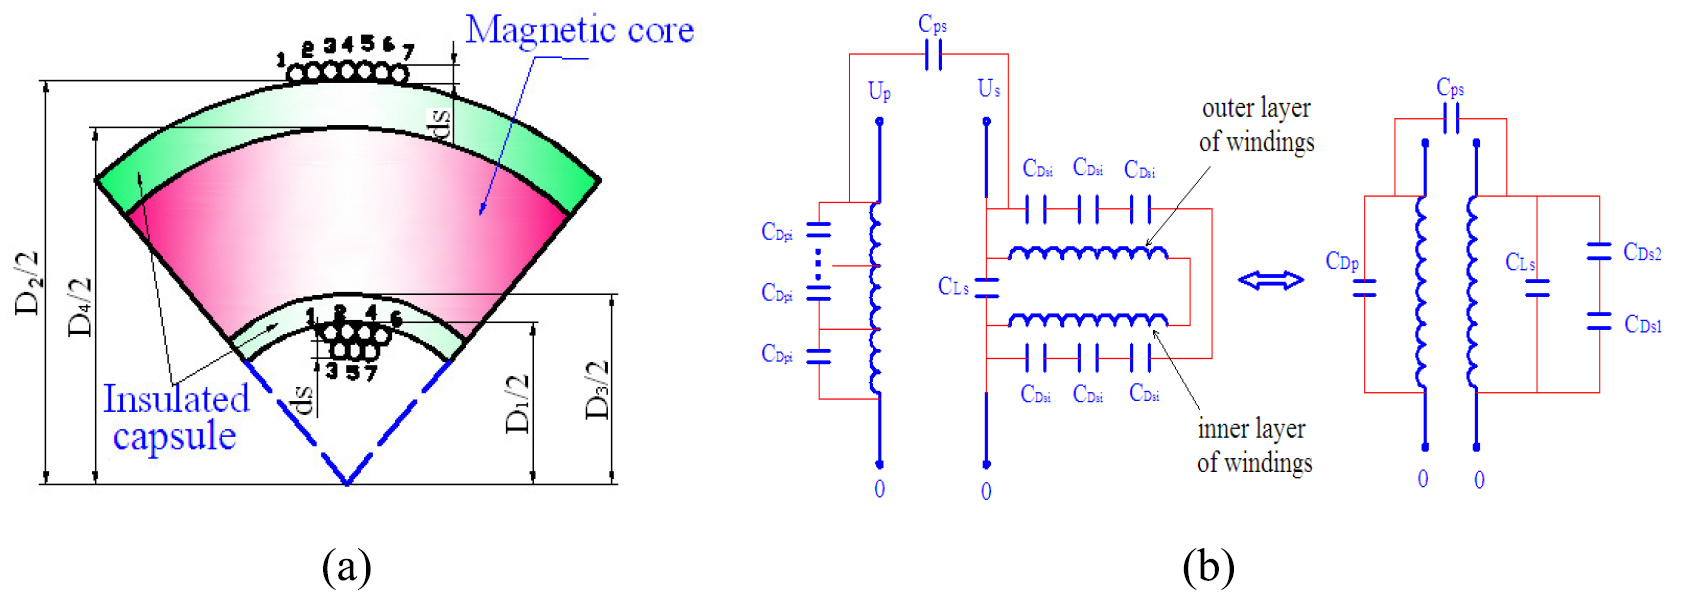 Hybrid Energy Storage And Applications Based On High Power Pulse Figure 2 Schematic Diagram Of A Transformer 13